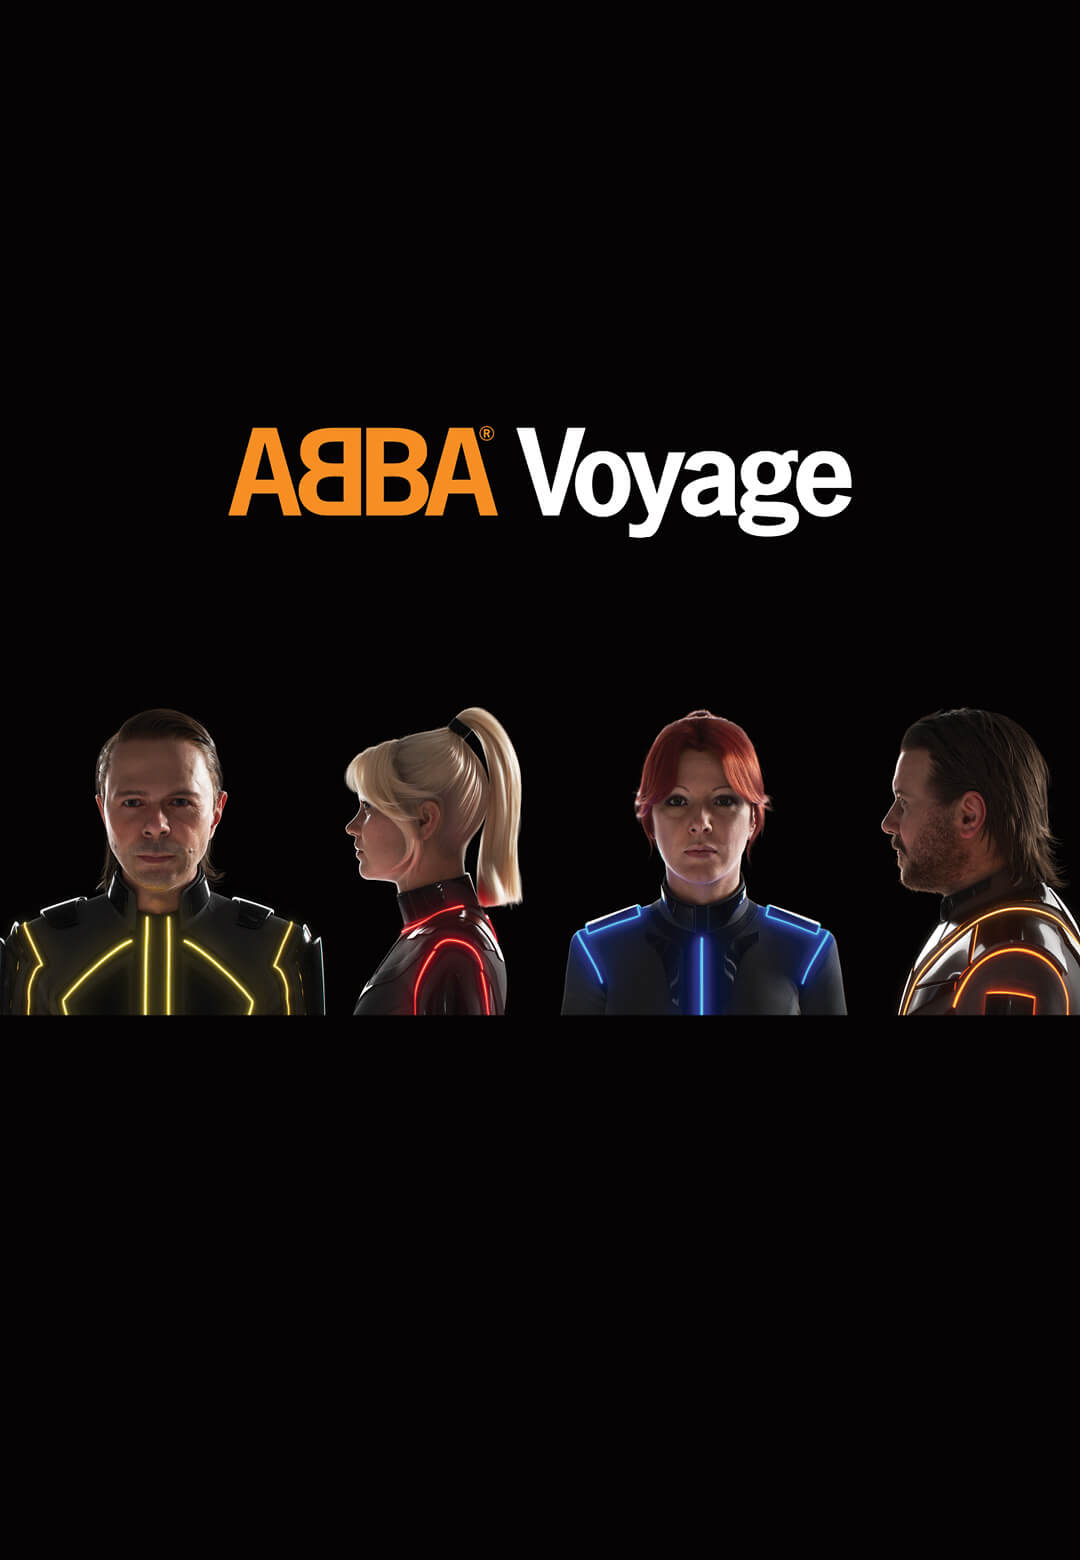 ABBA 'Voyage' is a new album and concert experience that reunites the Swedish pop group after nearly 40 years | ABBA Voyage | STIRworld